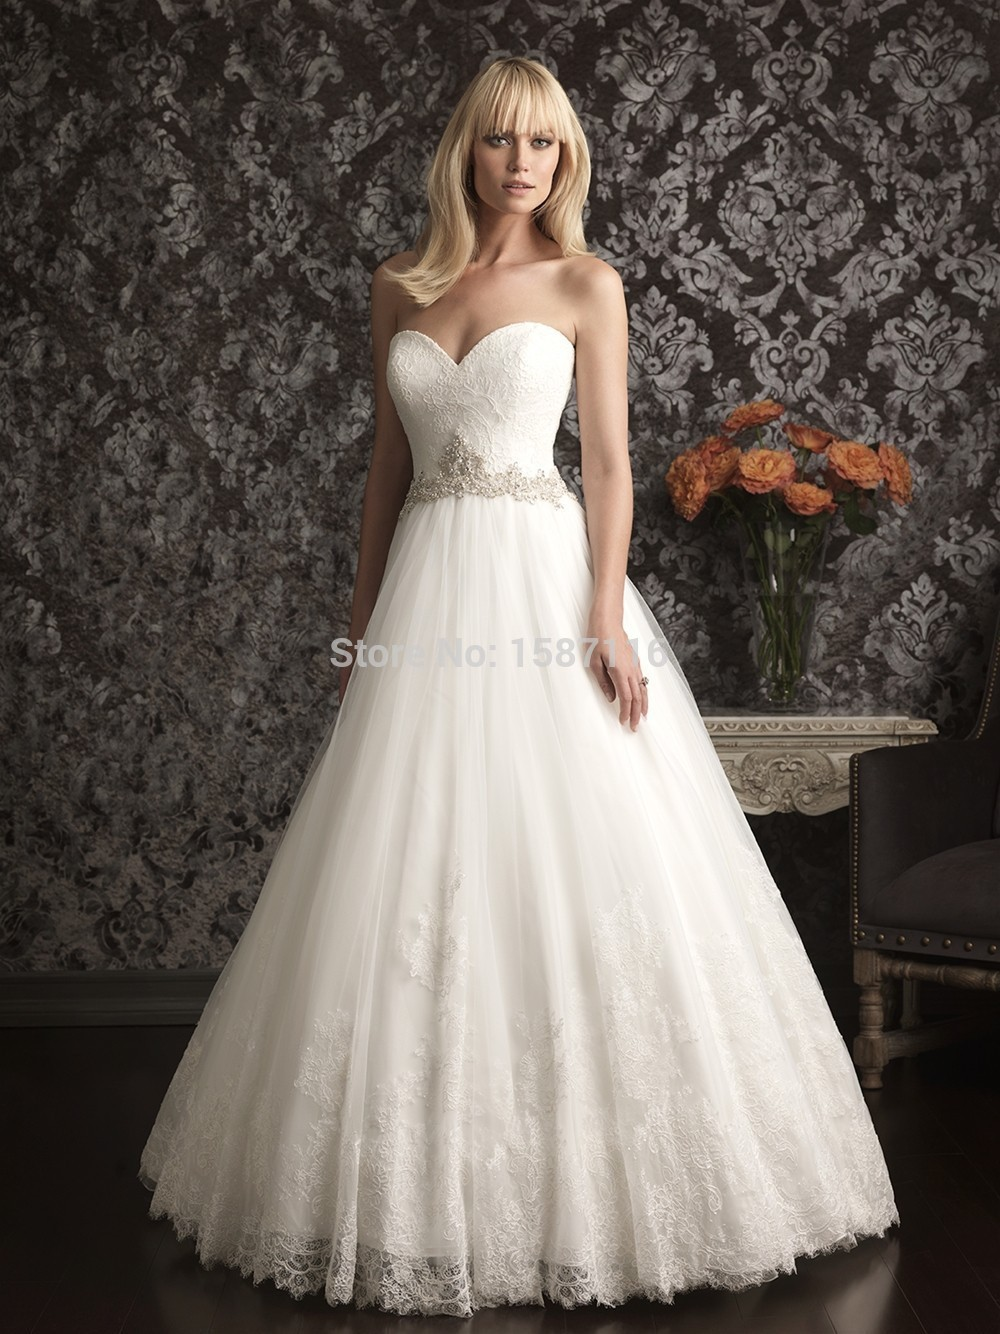 2015 Elegant Wedding Dresses Custom Made Sweetheart Strapless Delicate Lace Soft Tulles Beading